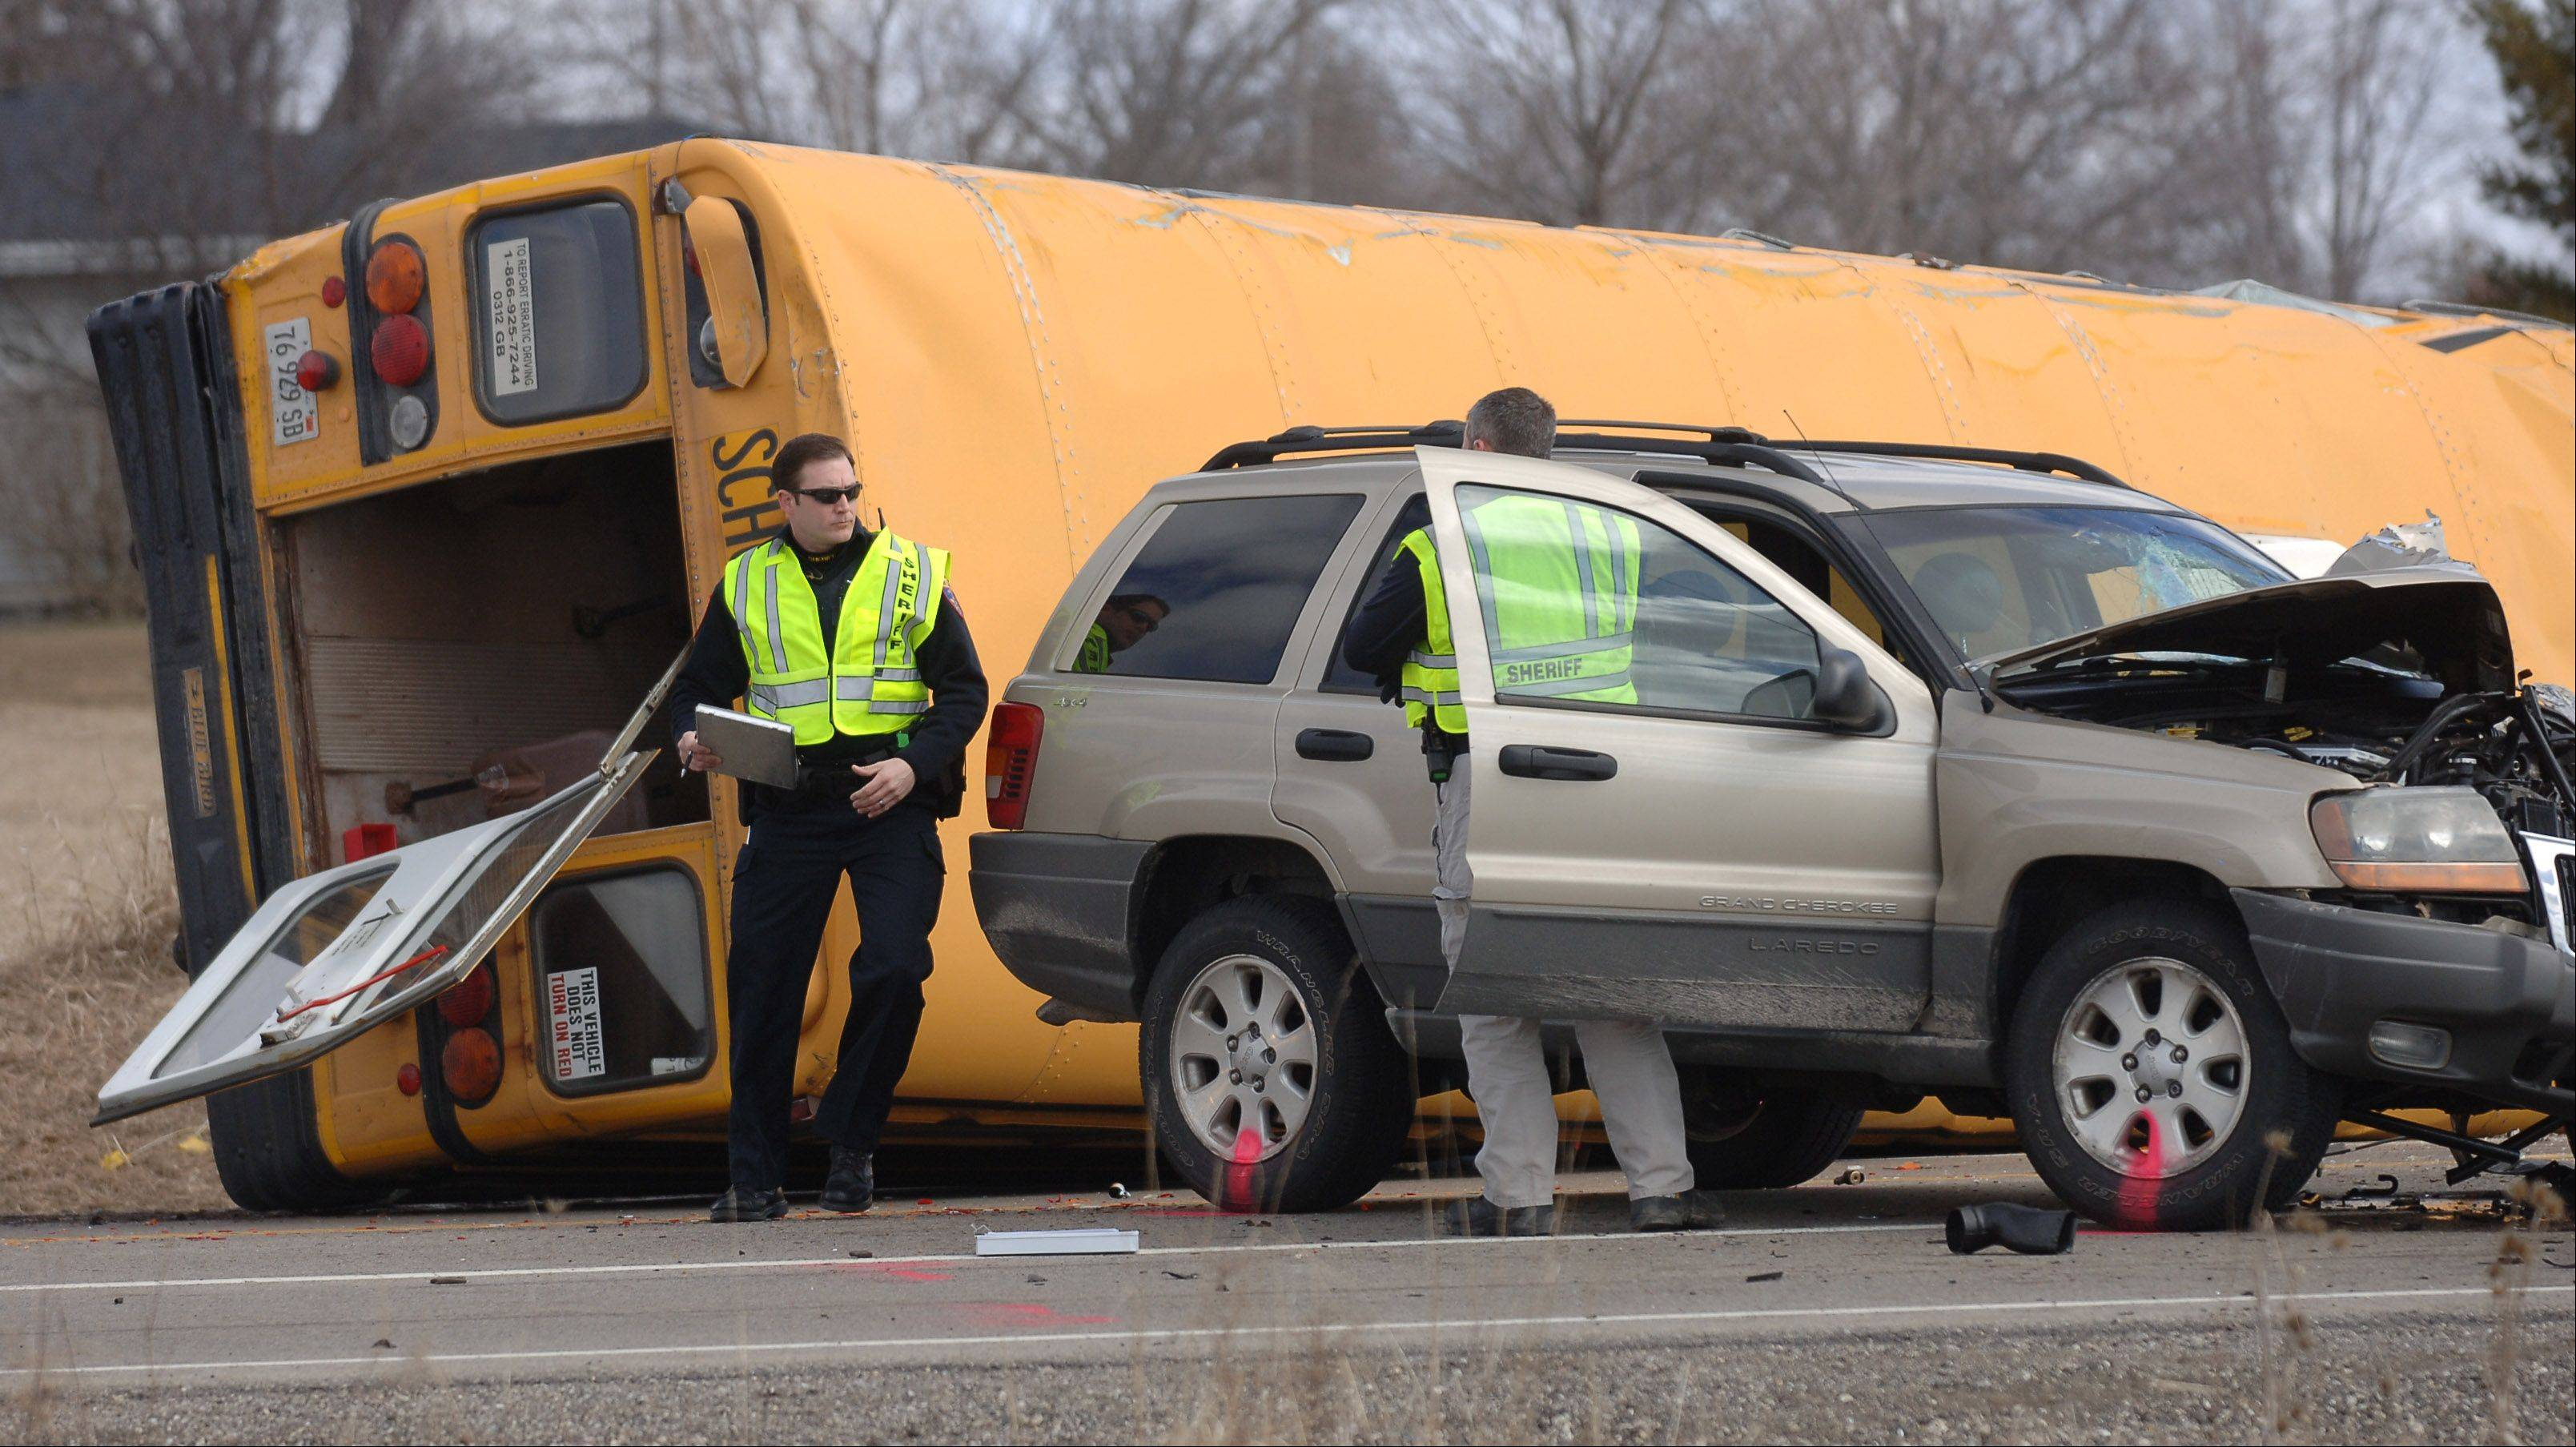 A school bus lies on its side as police officials investigate the crash scene at Route 173 and N. Kilbourne Road near Wadsworth on April 5.